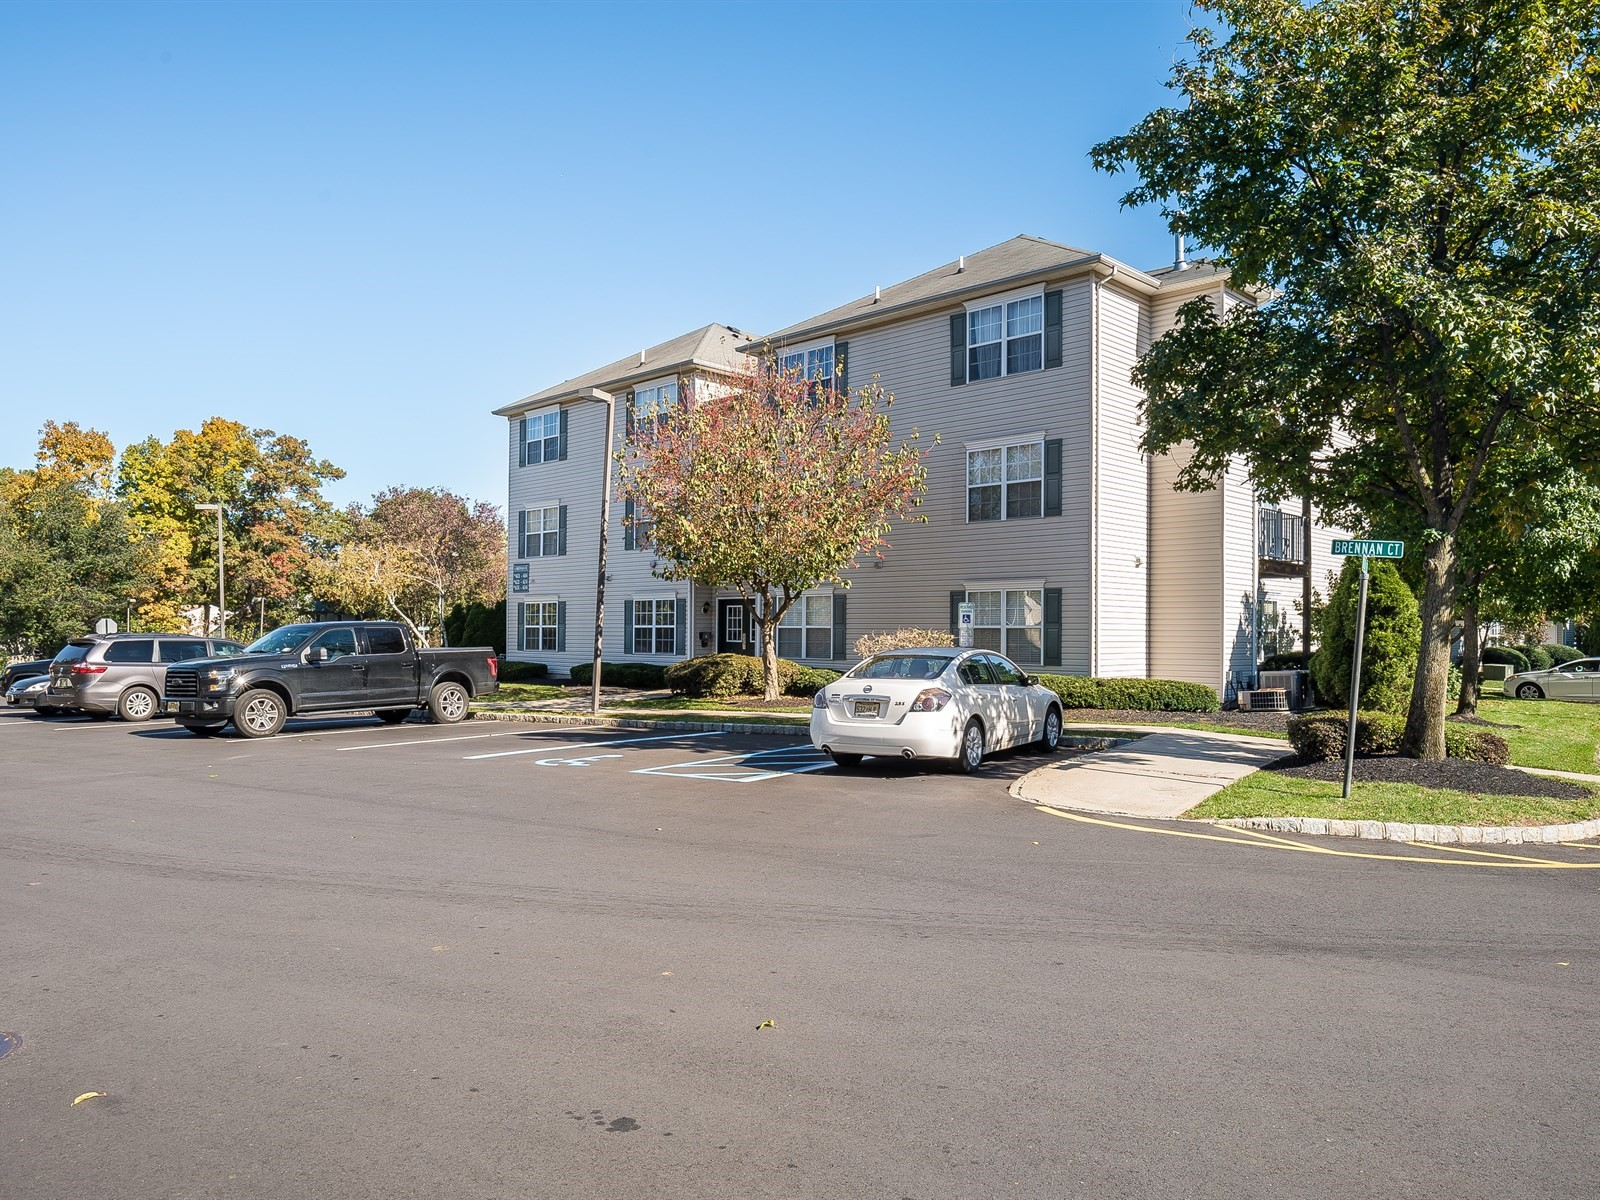 09-SouthPlainfield Furnished Apartment_Building